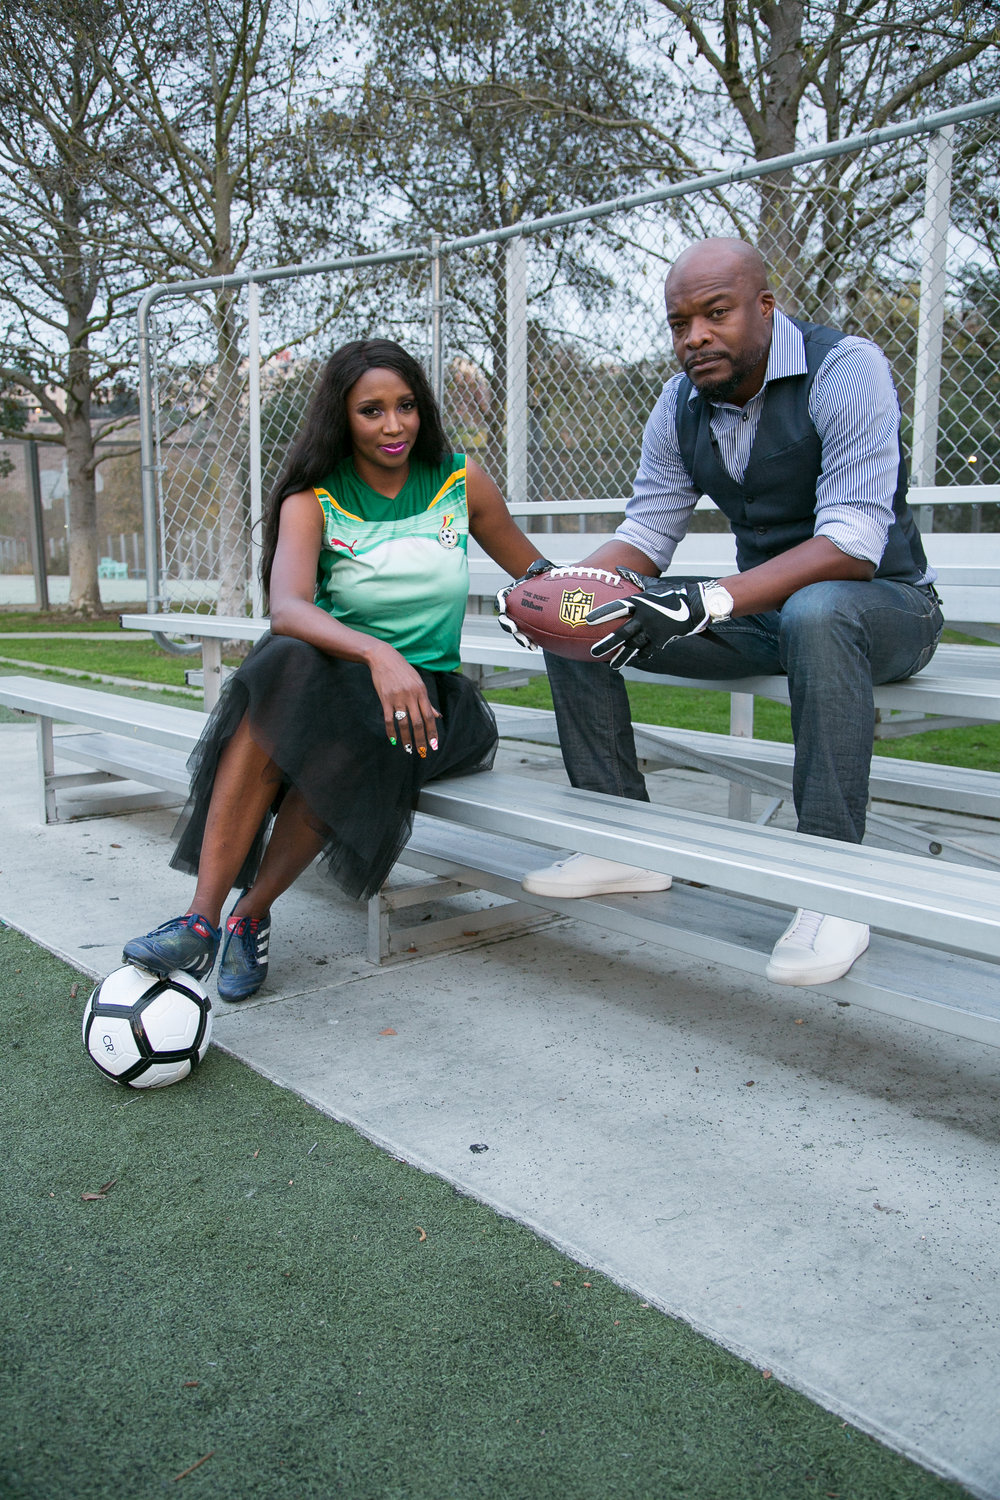 Co-founders Mimi and Kofi Nartey attribute a great deal of their success in business and life to their competitive sports careers.